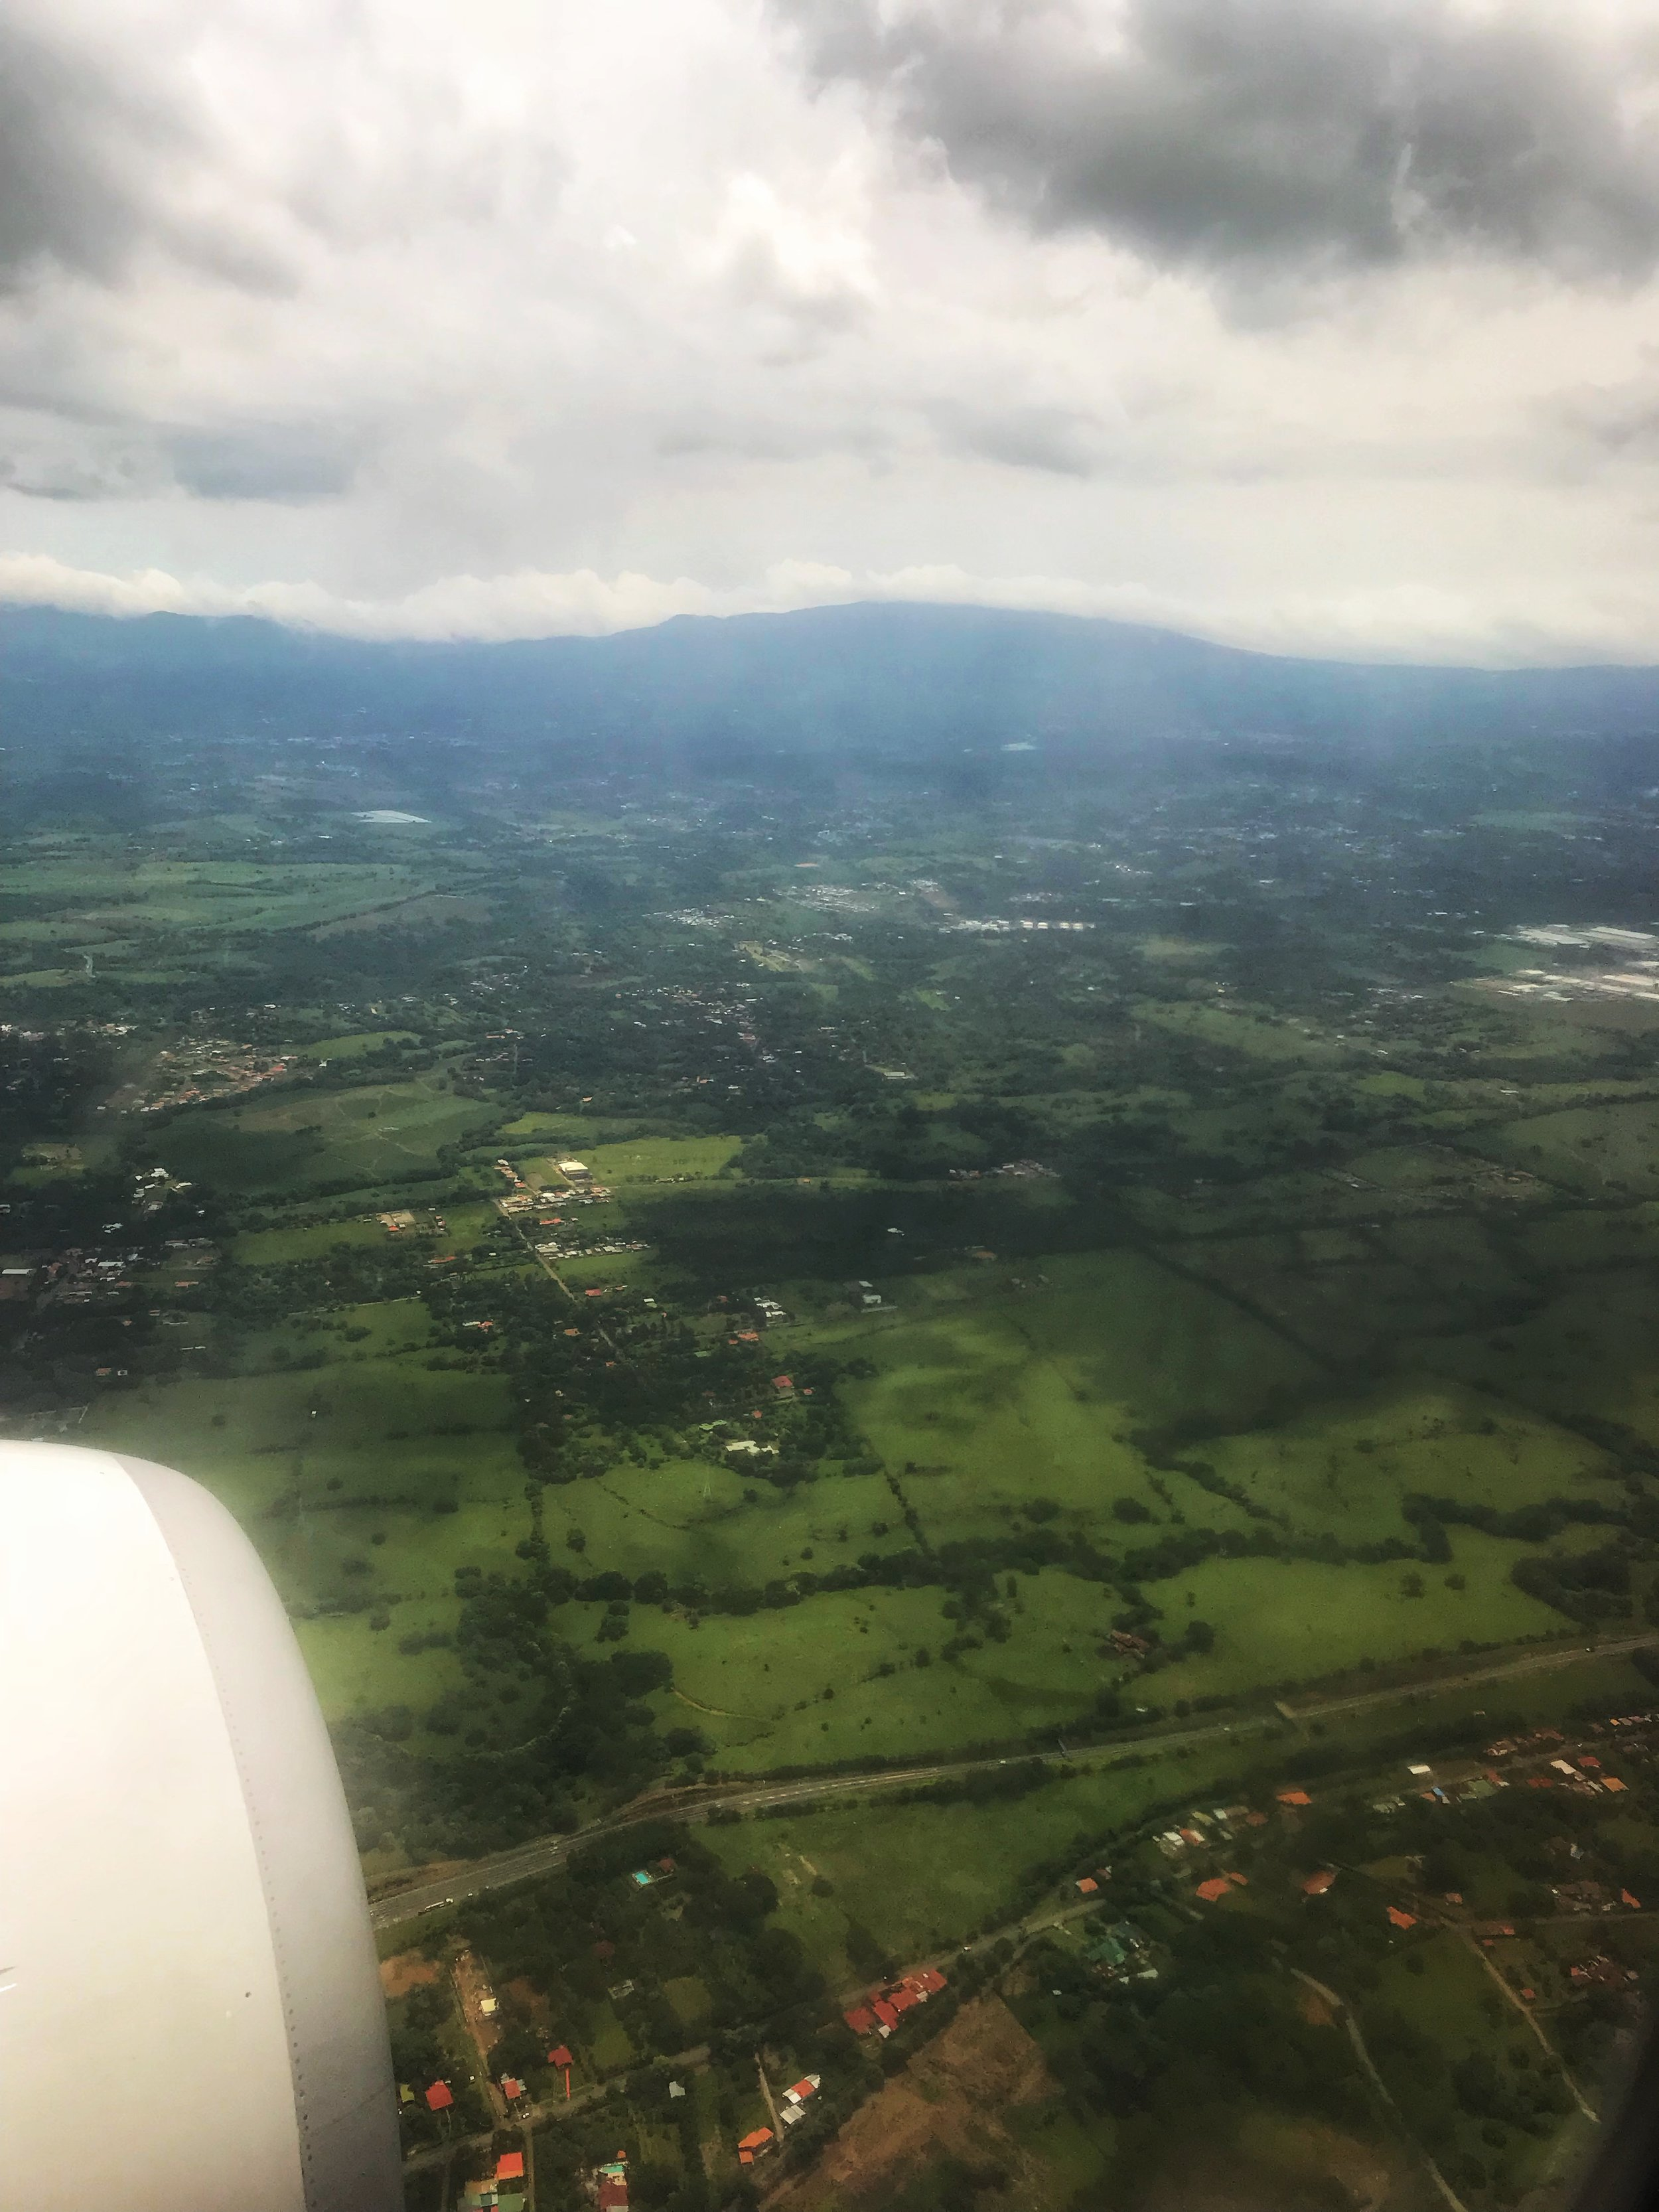 Descending into Costa Rica on Copa